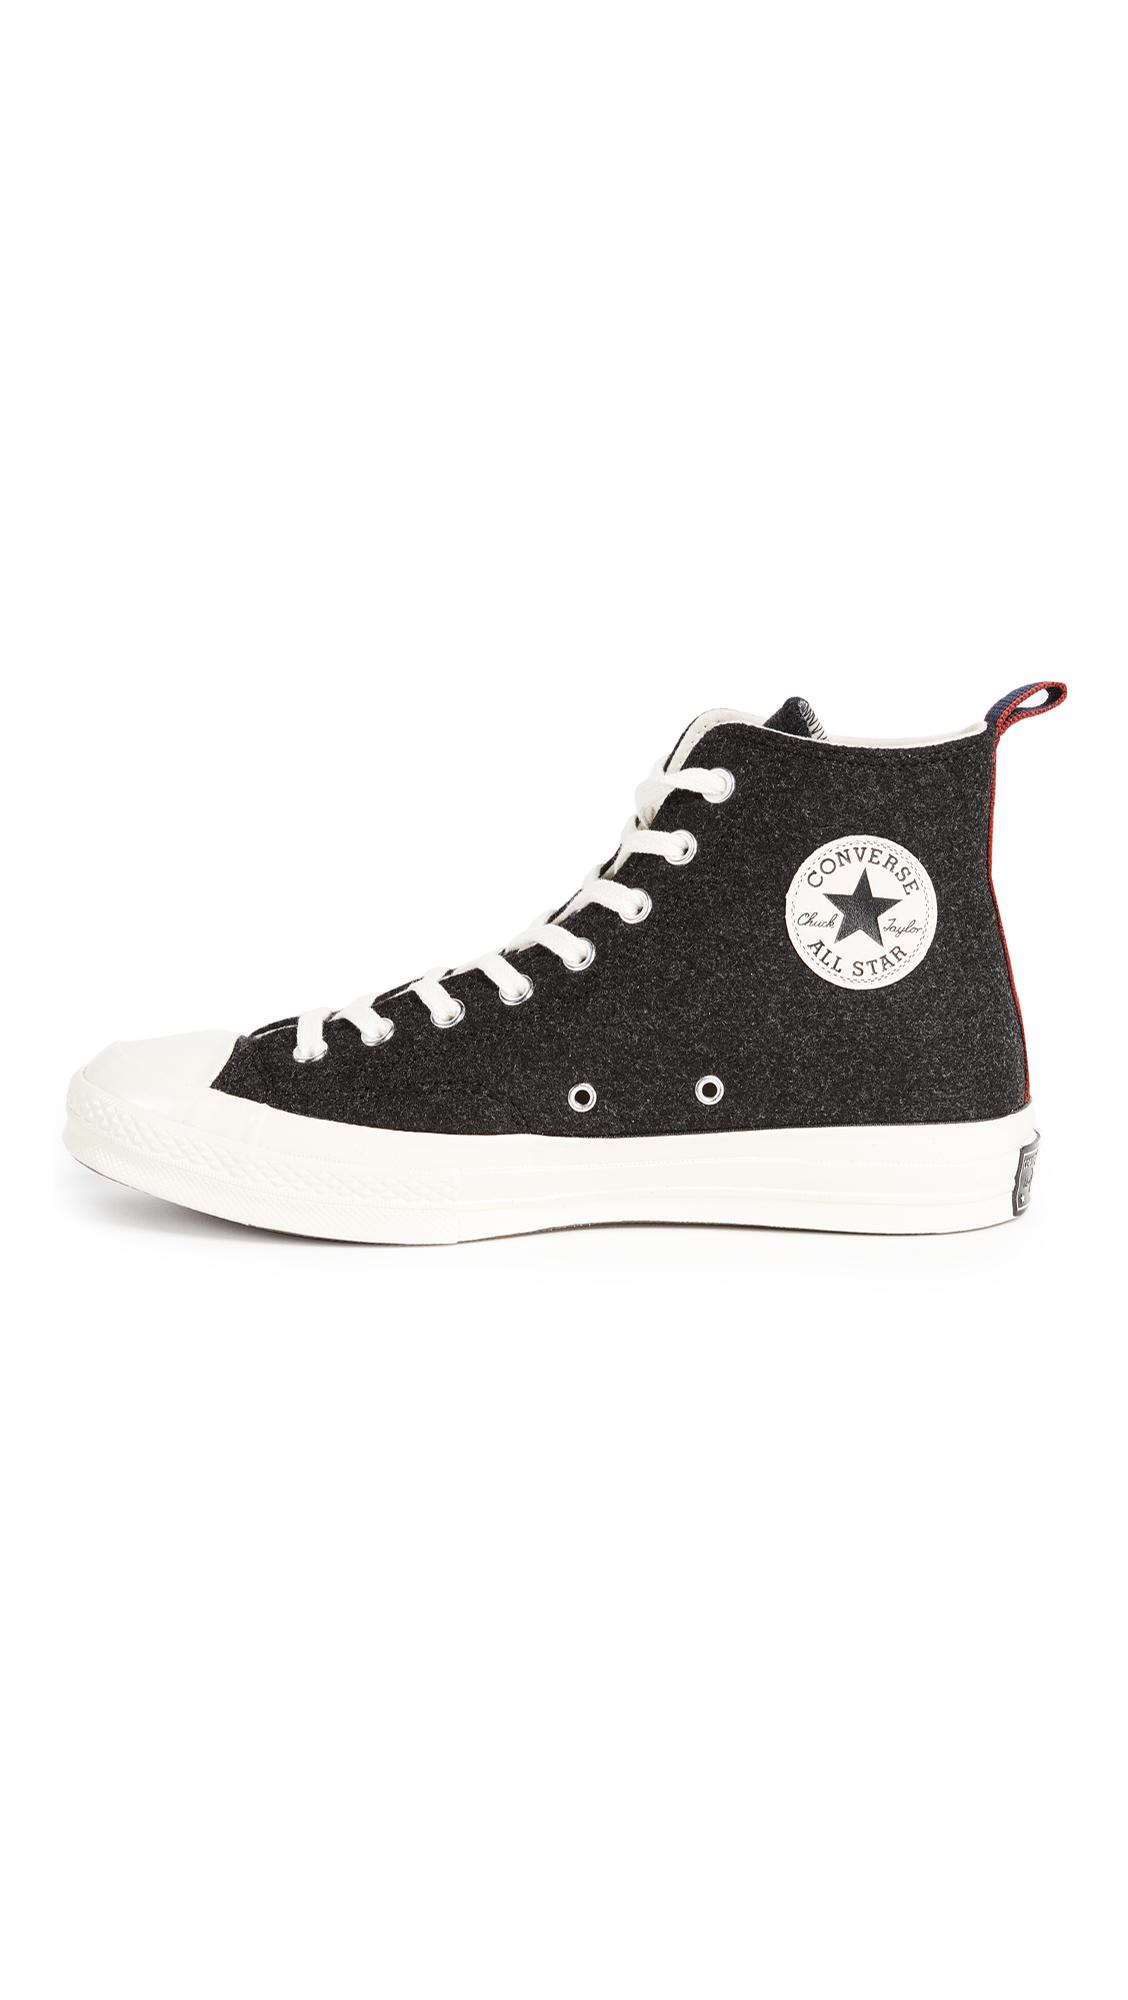 a62b36458cb Converse Chuck Taylor  70s Heritage Felt High Top Sneakers in Black ...